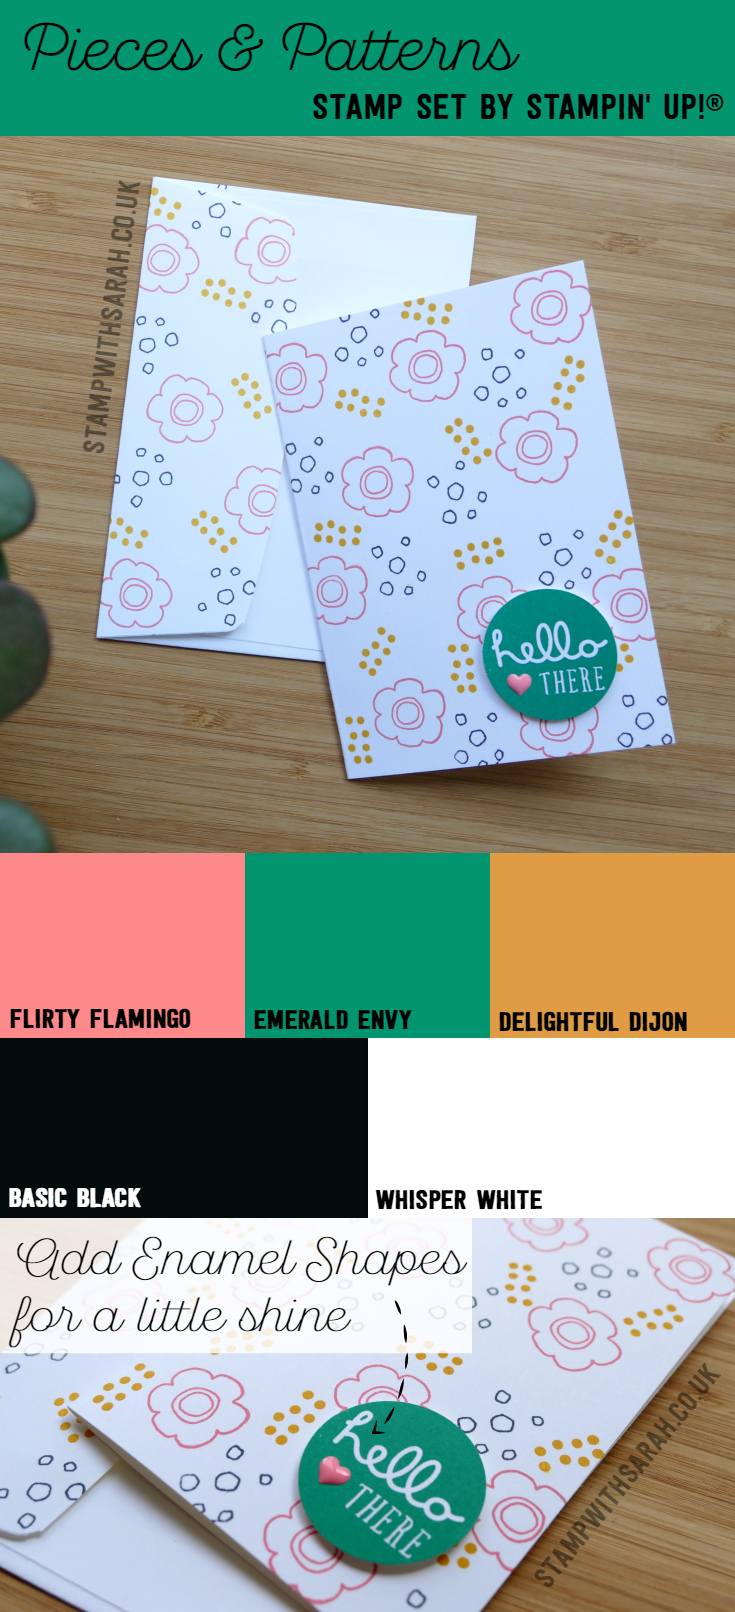 Pieces & Patterns stamp set by stamping up coming June 1st! My favourite colour combination right now!